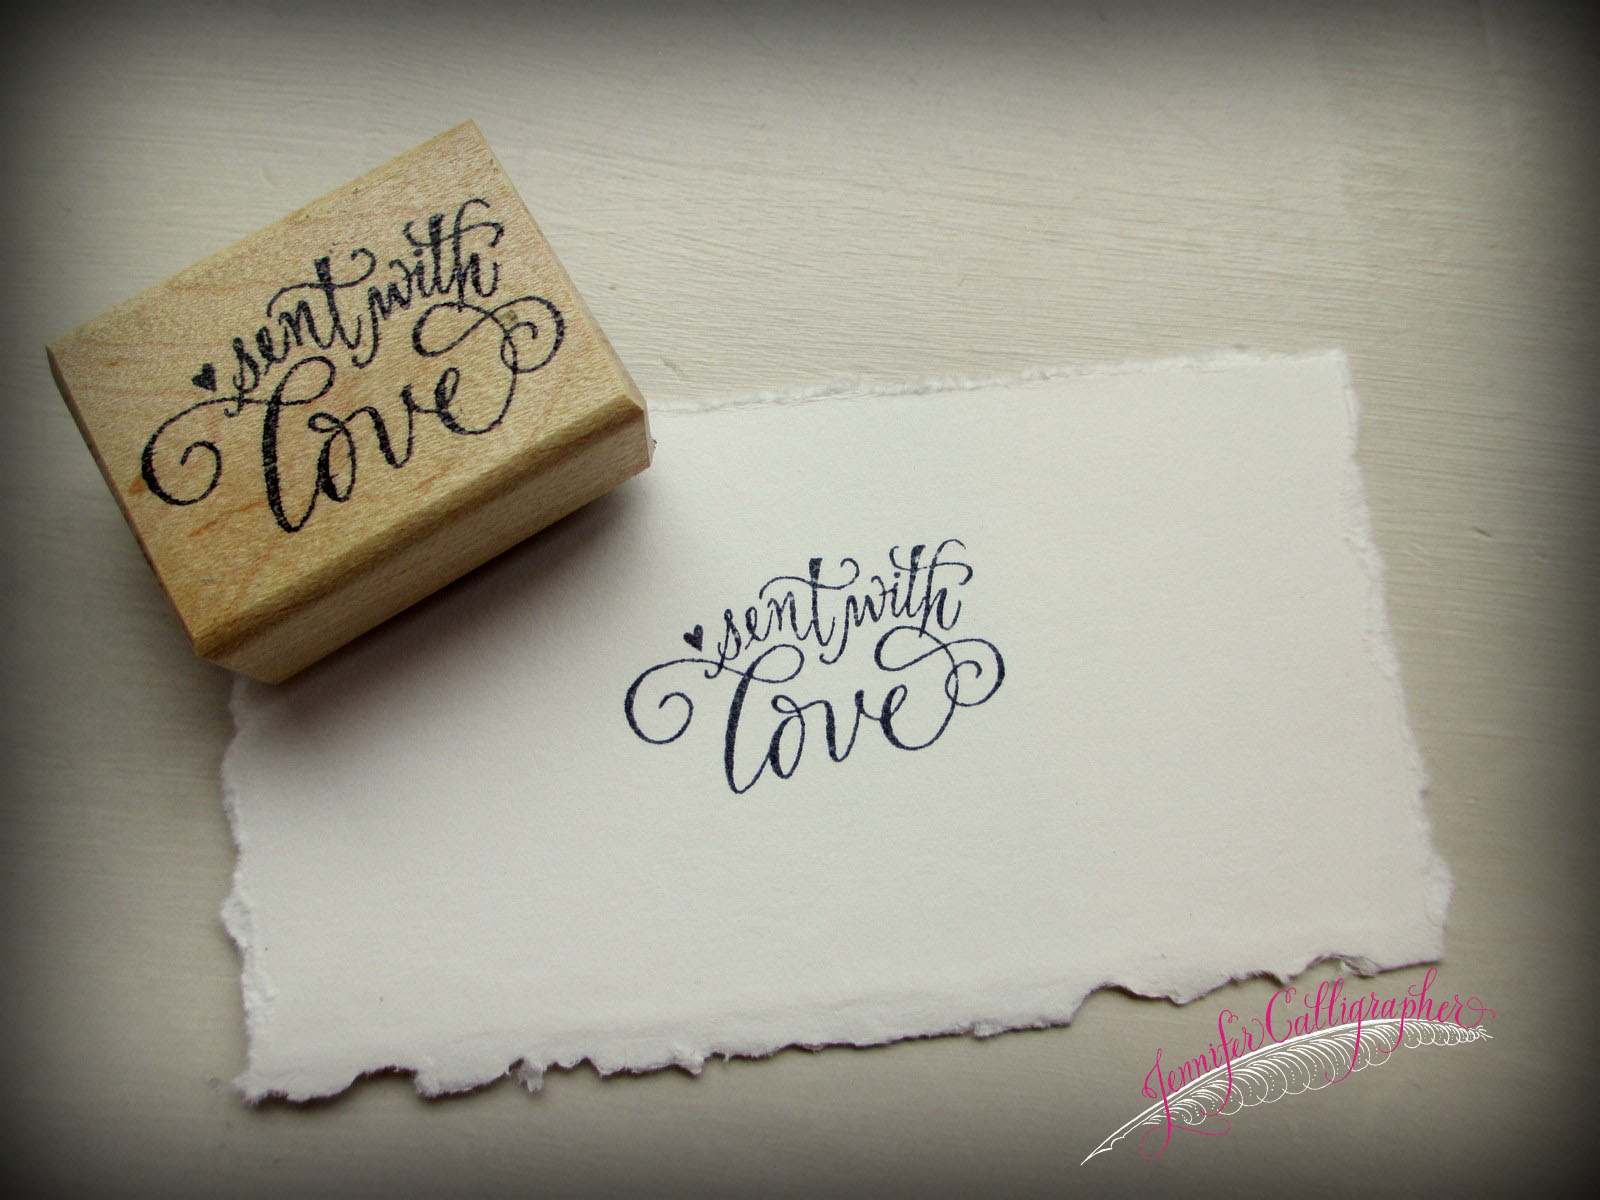 Rubber stamps in calligraphy jennifer calligrapher